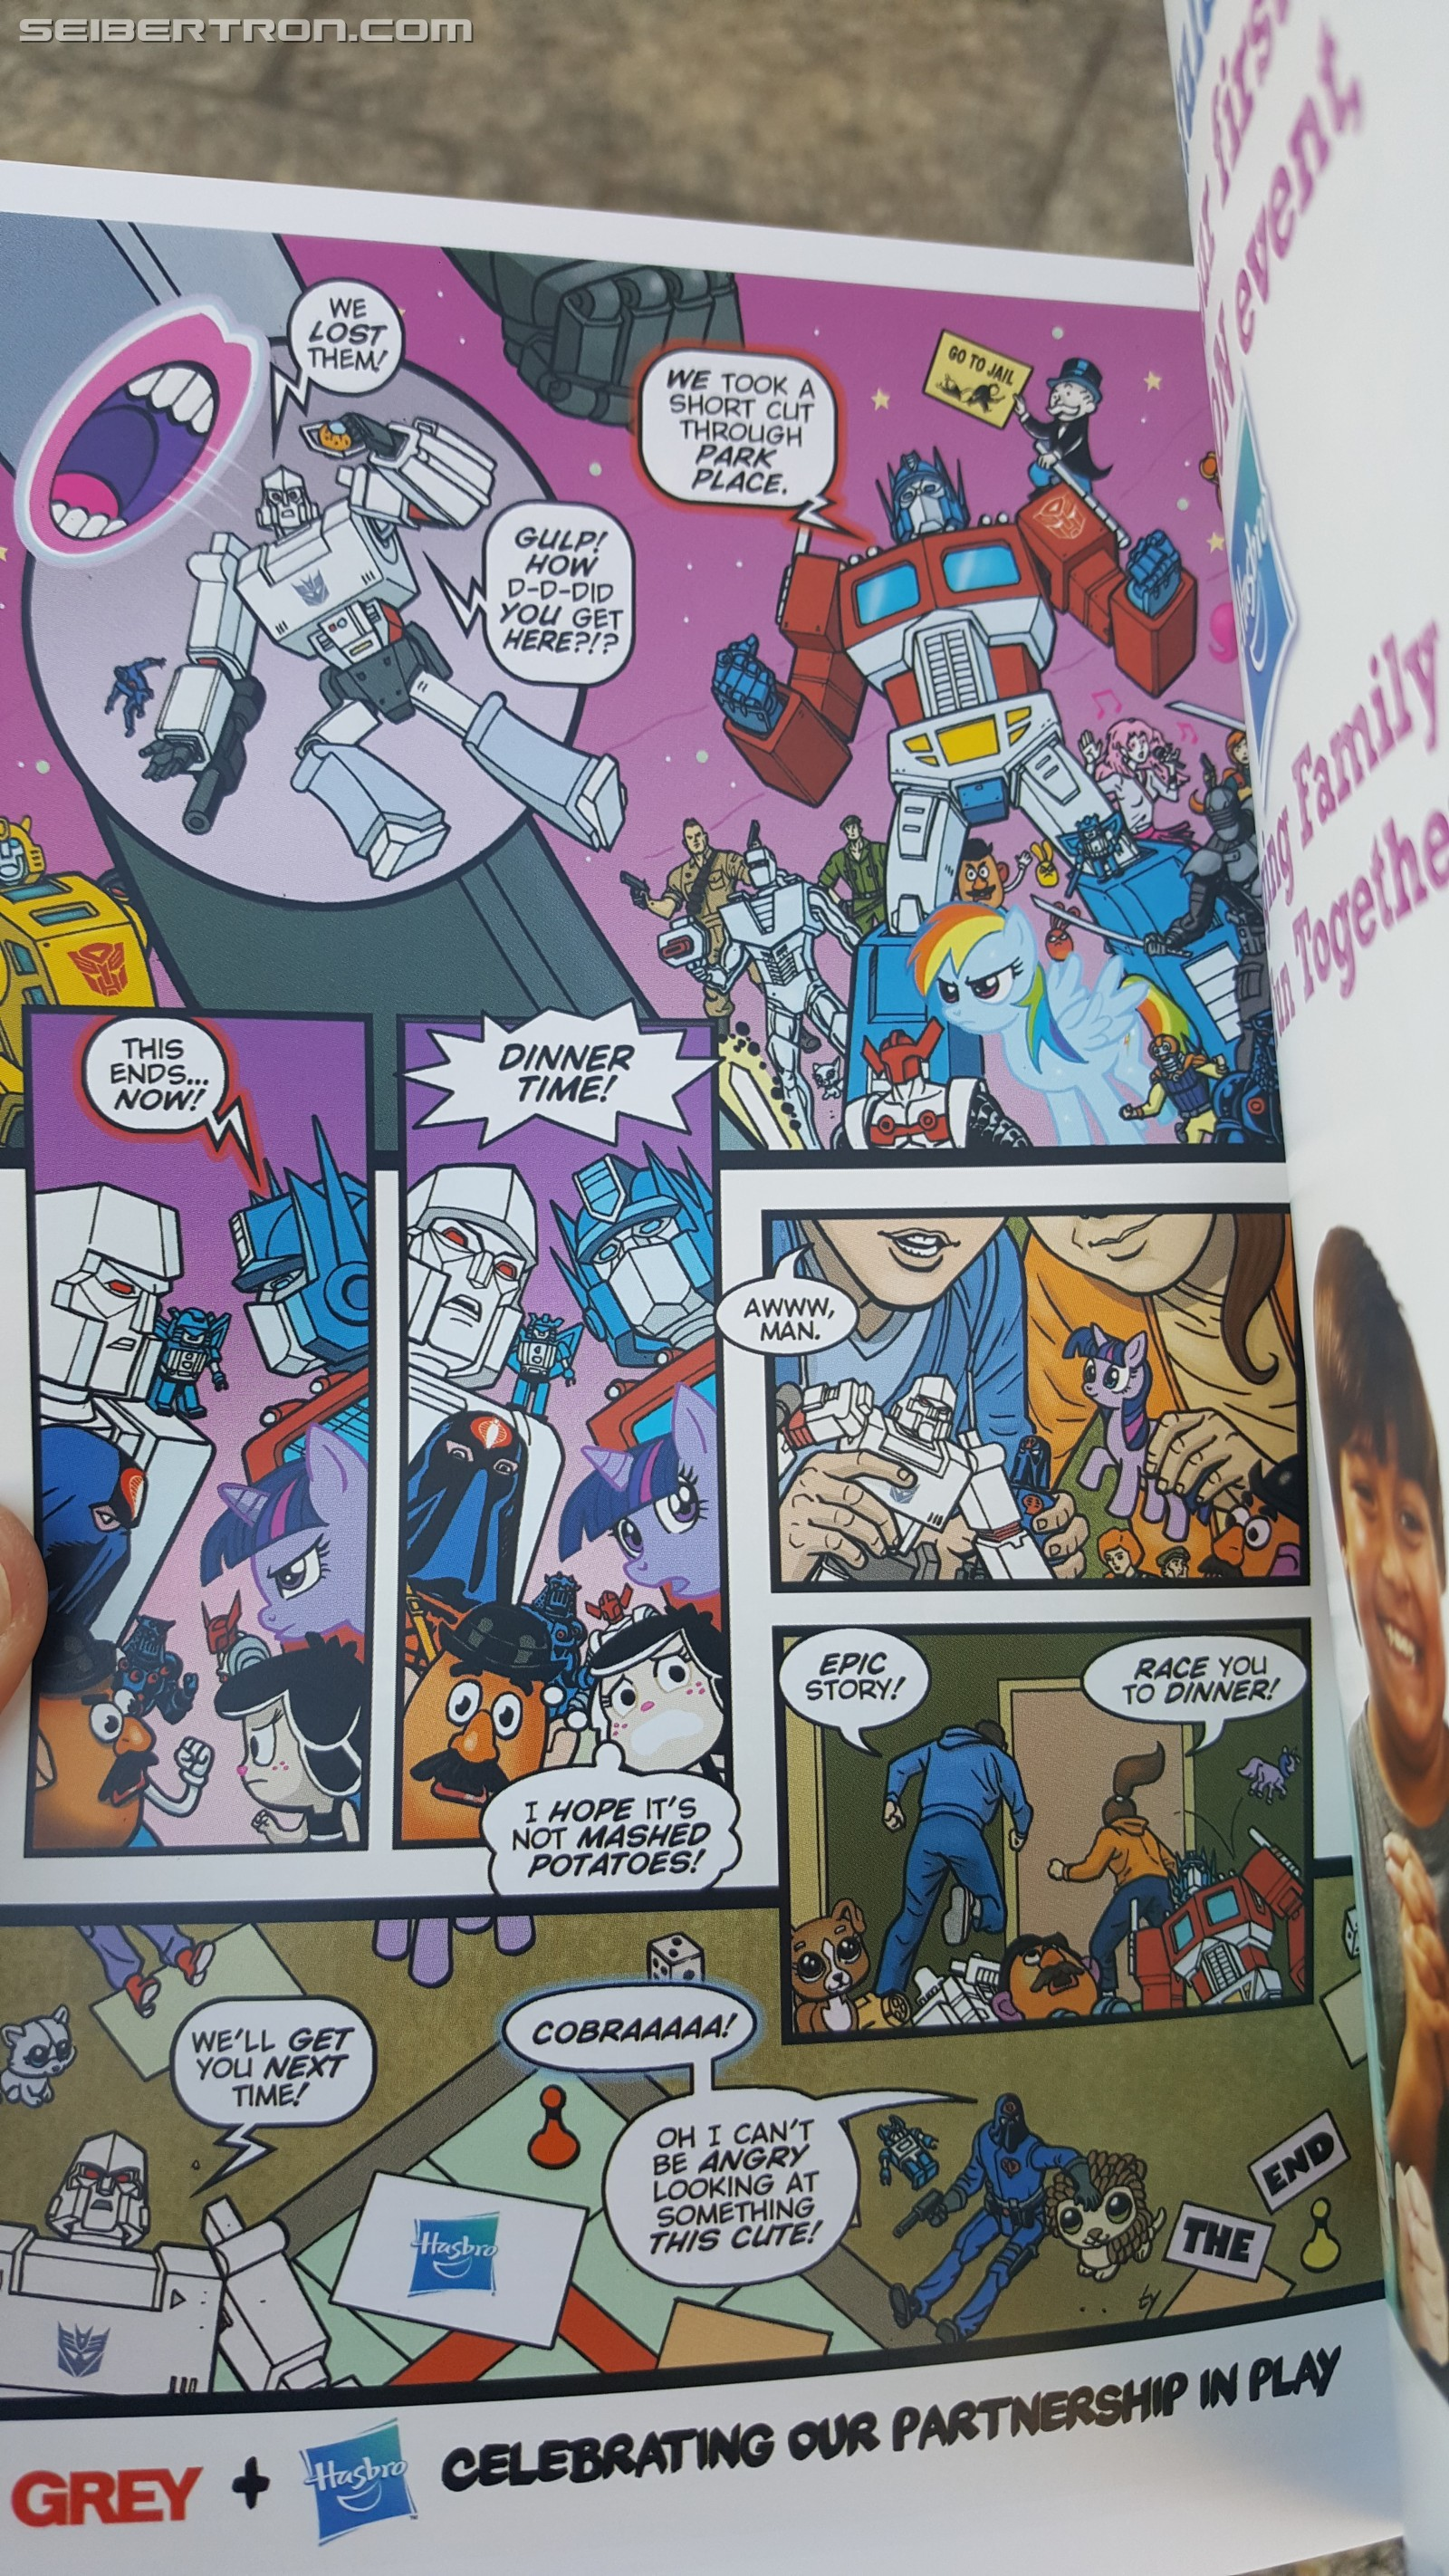 Transformers News: #HASCON Mini-Comic from Official Guide, featuring Transformers, GI Joe, MLP and More